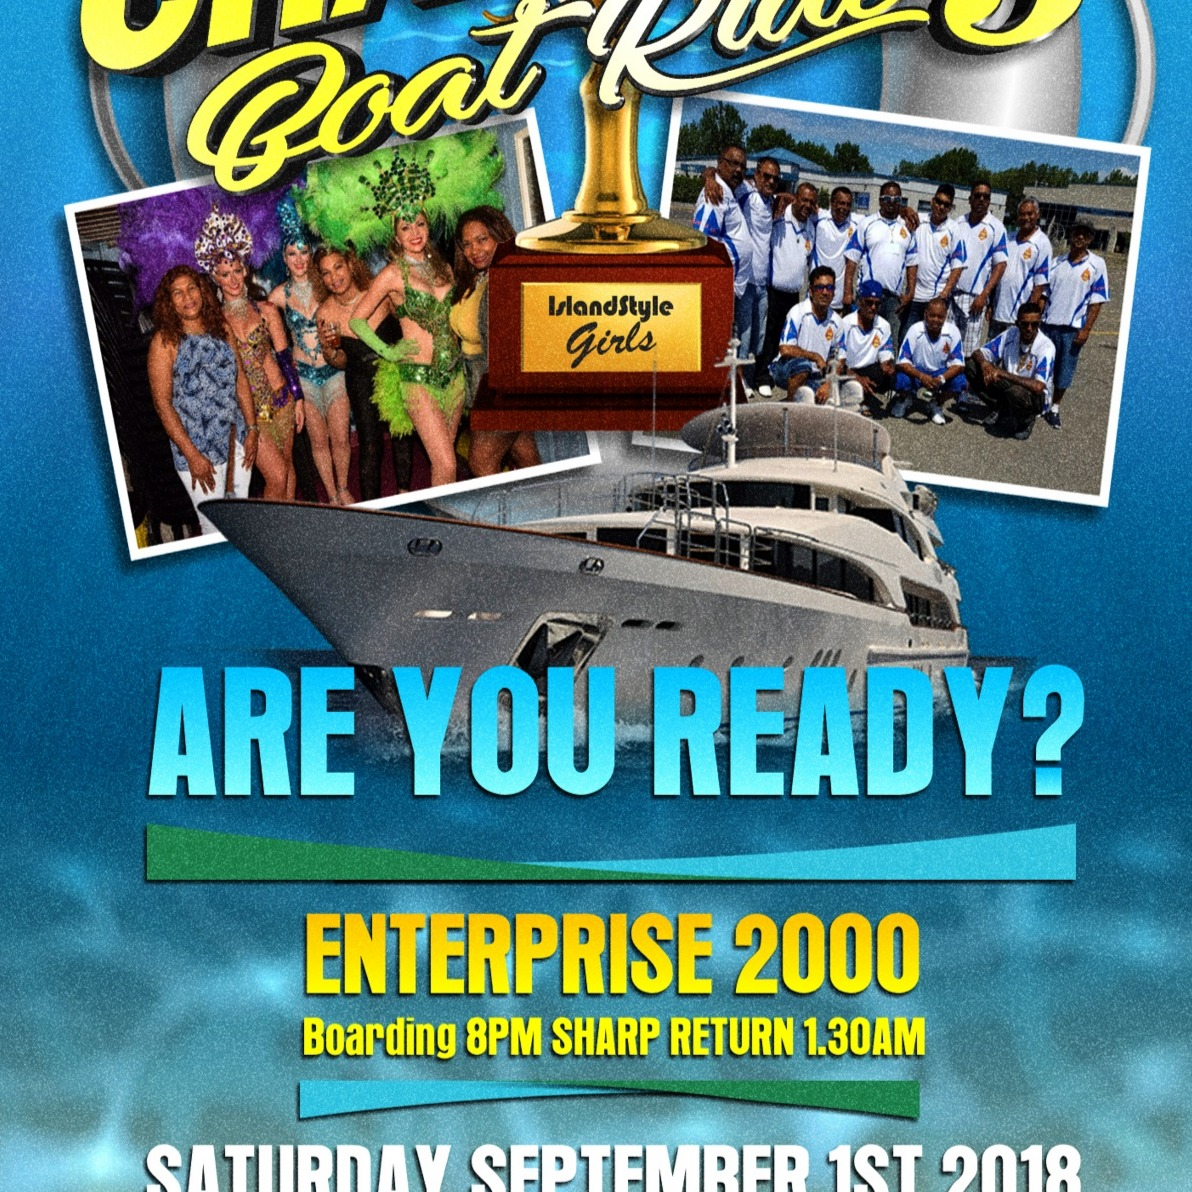 BOAT RIDE CHAMPIONS 3 ARE YOU READY?